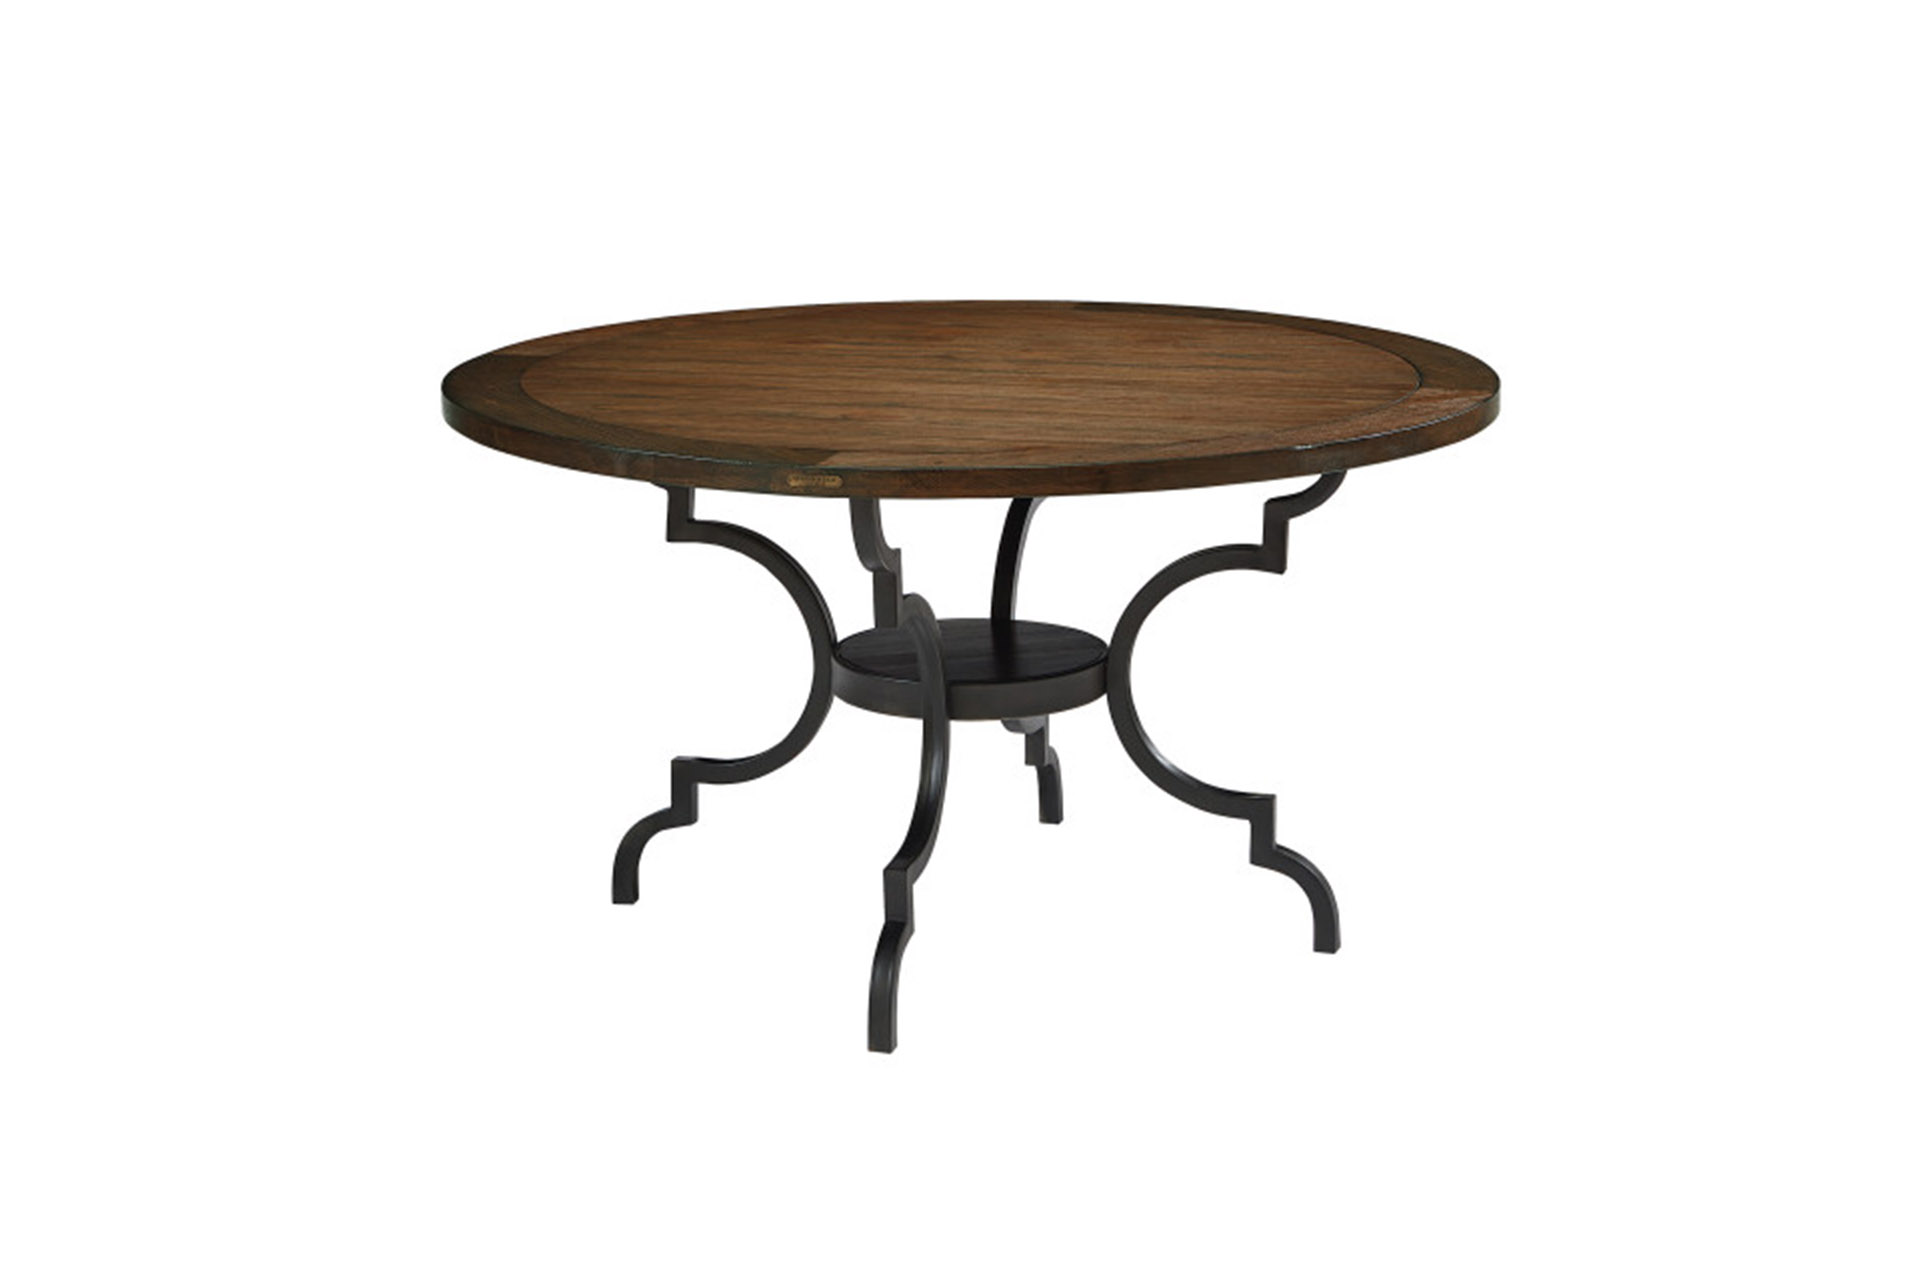 Small black dining table Shaped Magnolia Home Breakfast Round Black Dining Table By Joanna Gaines Wayfair Small Dining Tables Living Spaces